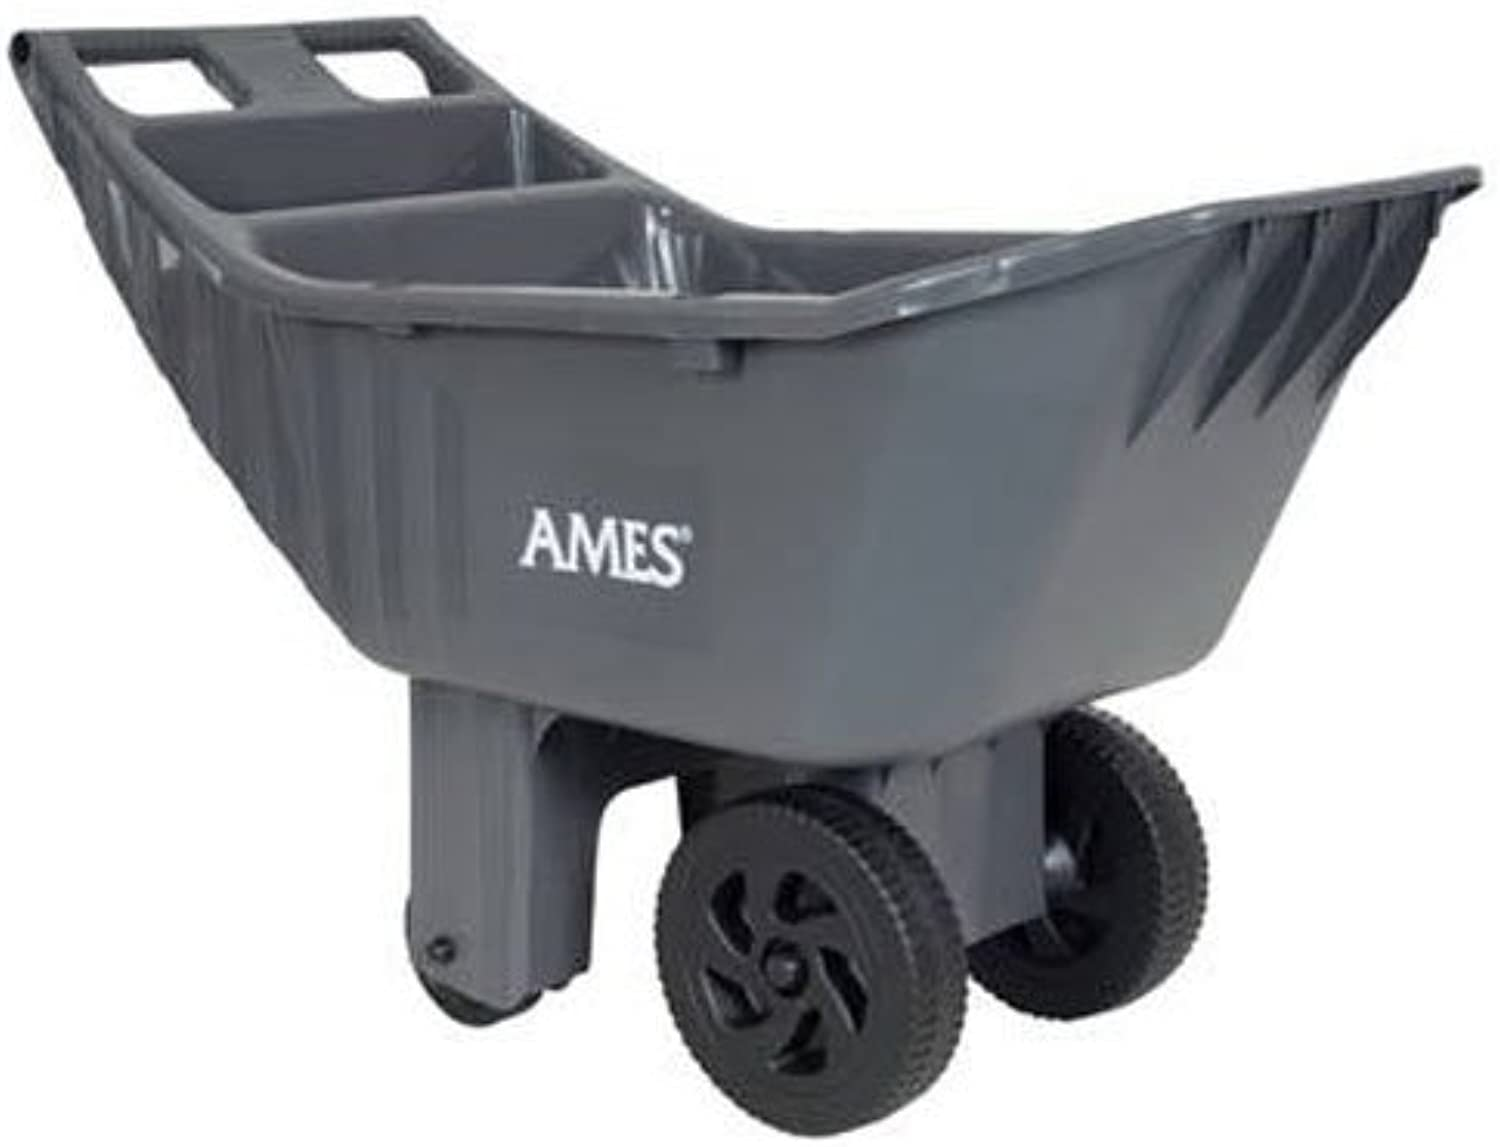 Ames Easy Roller Poly Yard Cart - 2463875